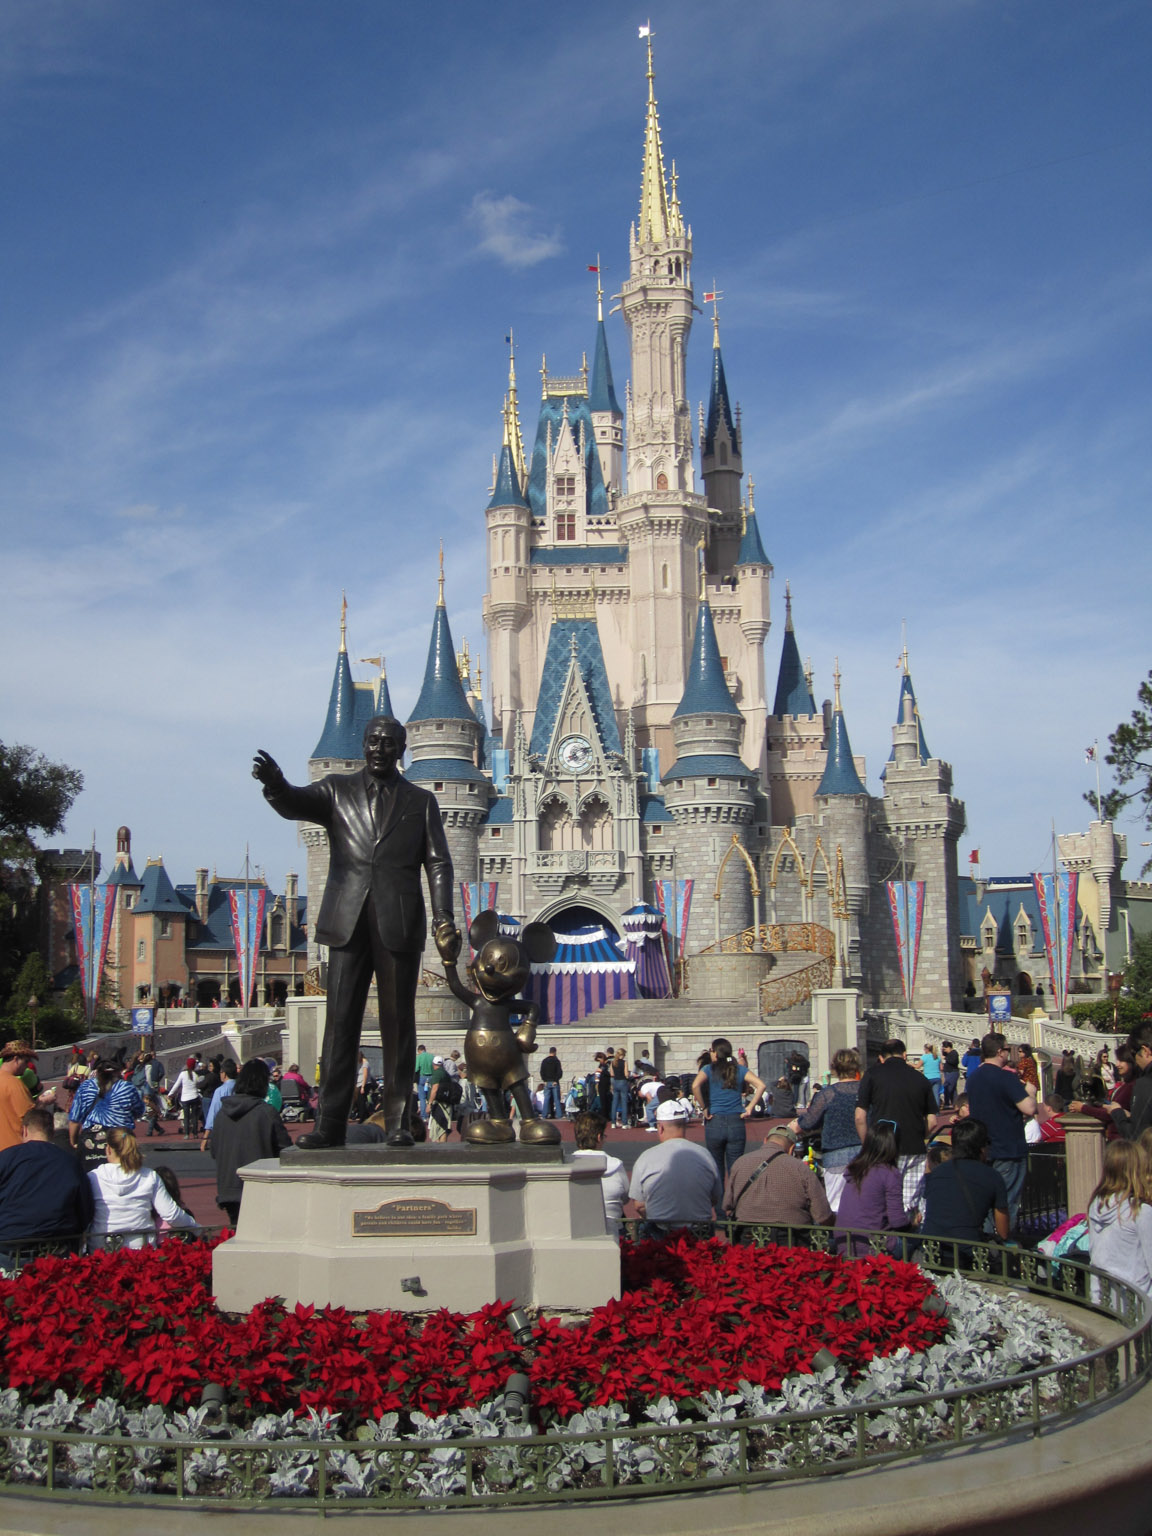 Have the Walt Disney World theme parks ever closed?